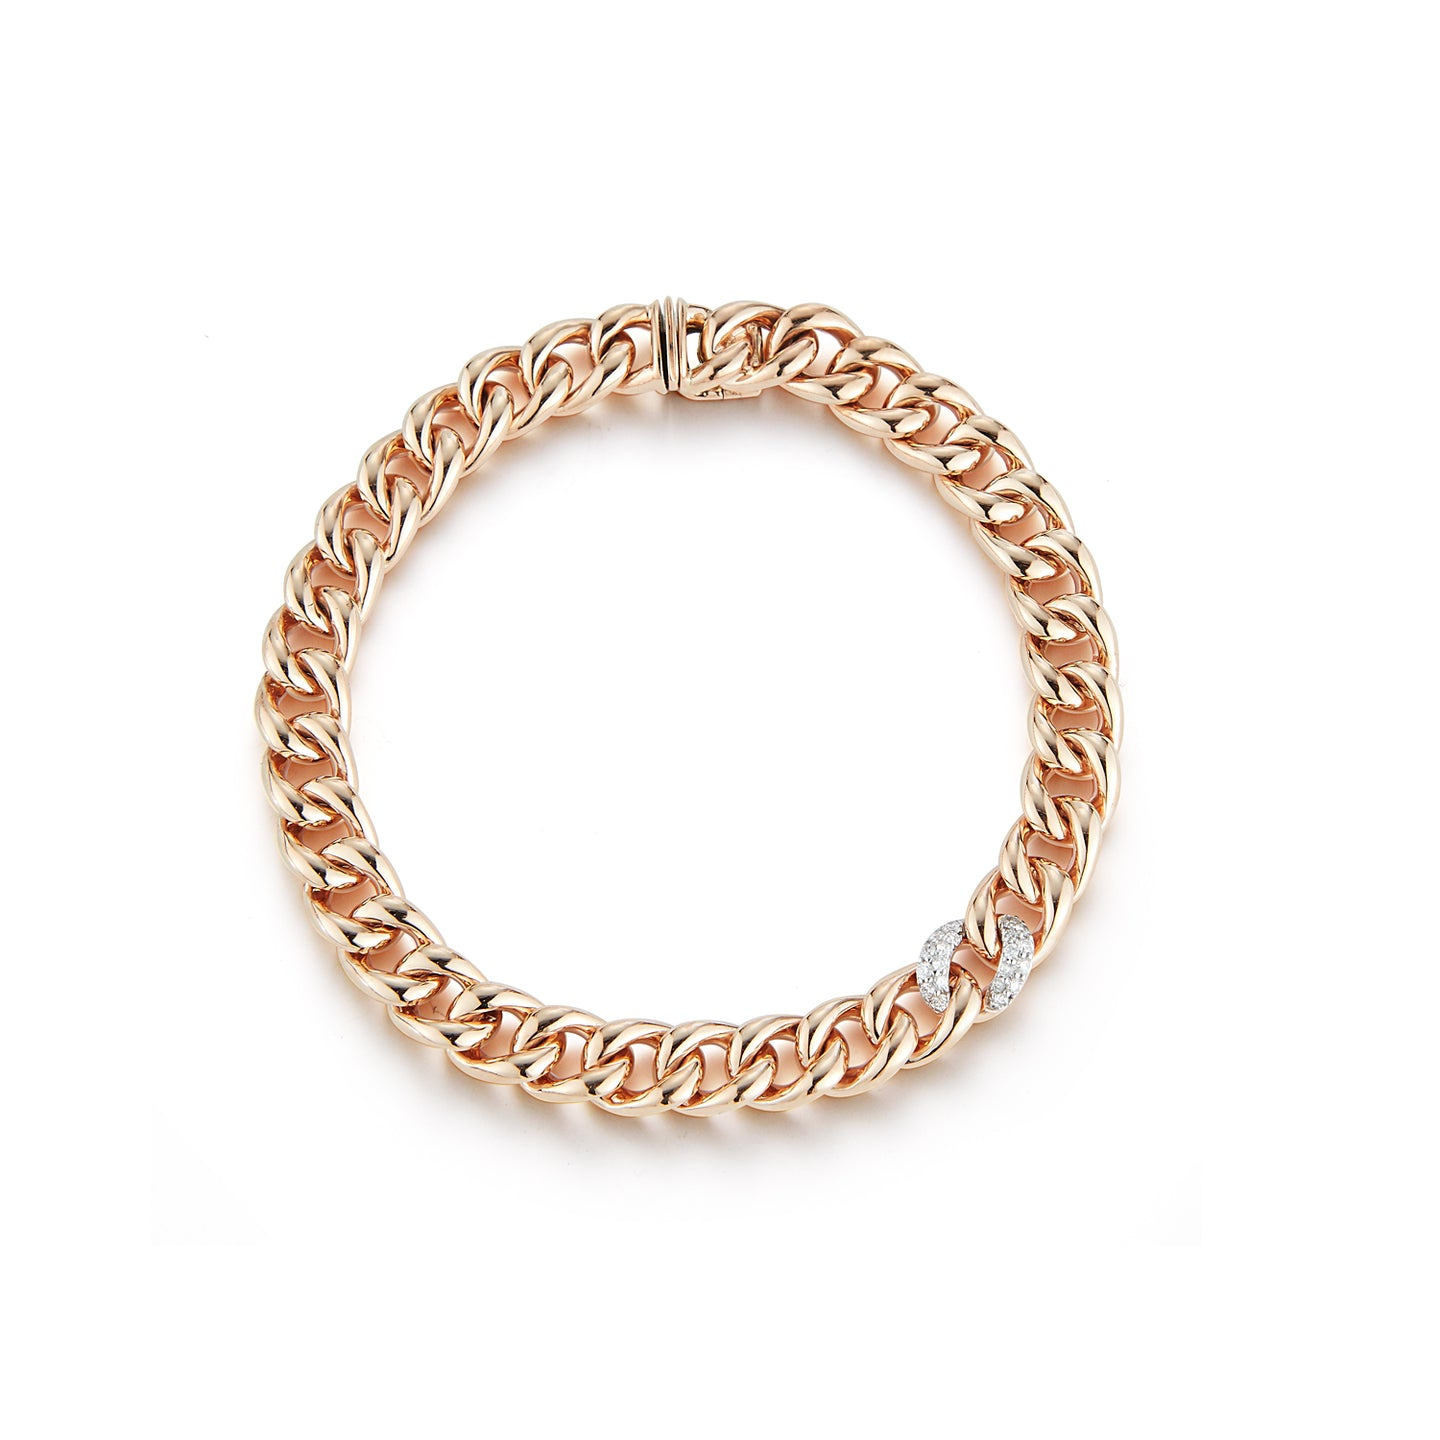 SAXON 18K ROSE GOLD SMALL 7.5mm CURB LINK AND SINGLE DIAMOND LINK BRACELET